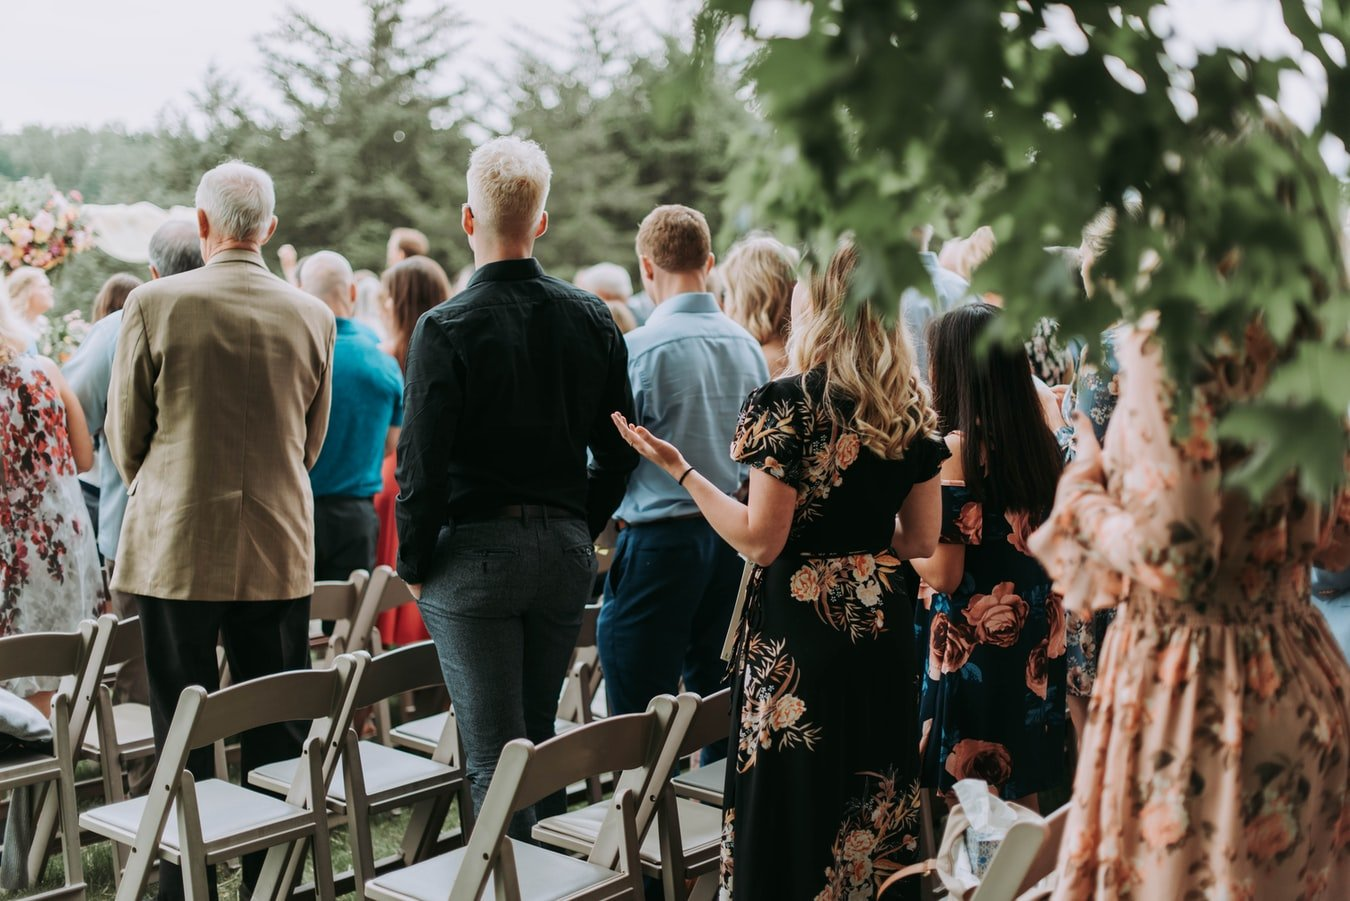 The wedding guests | Source: Unsplash